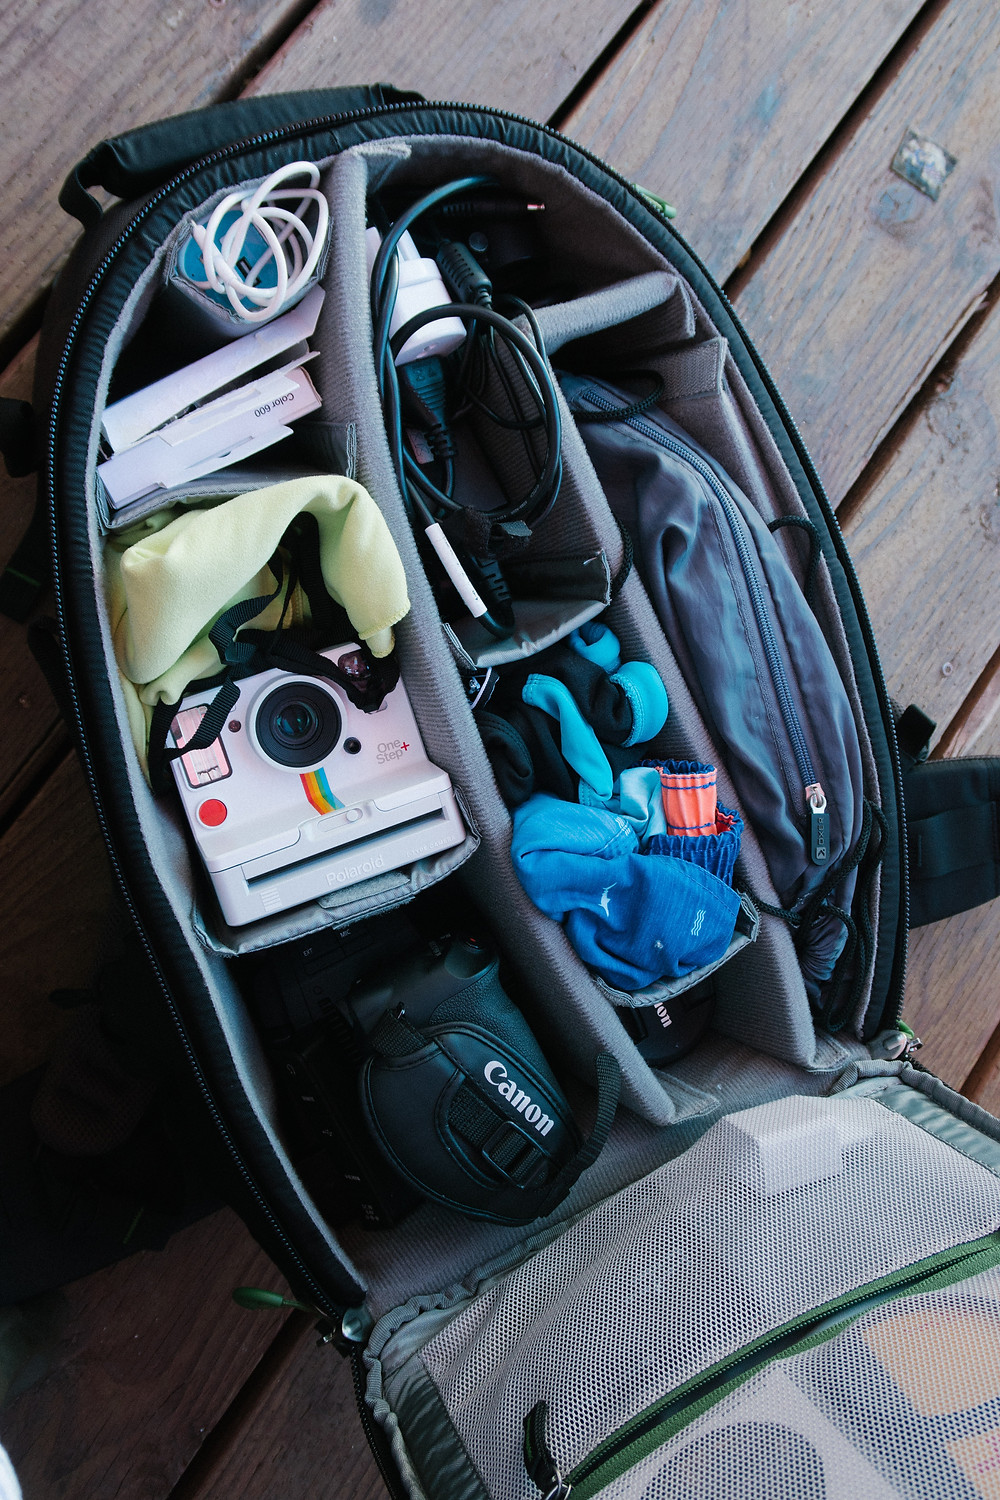 A bag is packed in a modular and organized manner, displaying contents including a campera, swimsuit, pack, electronics, and envelopes.